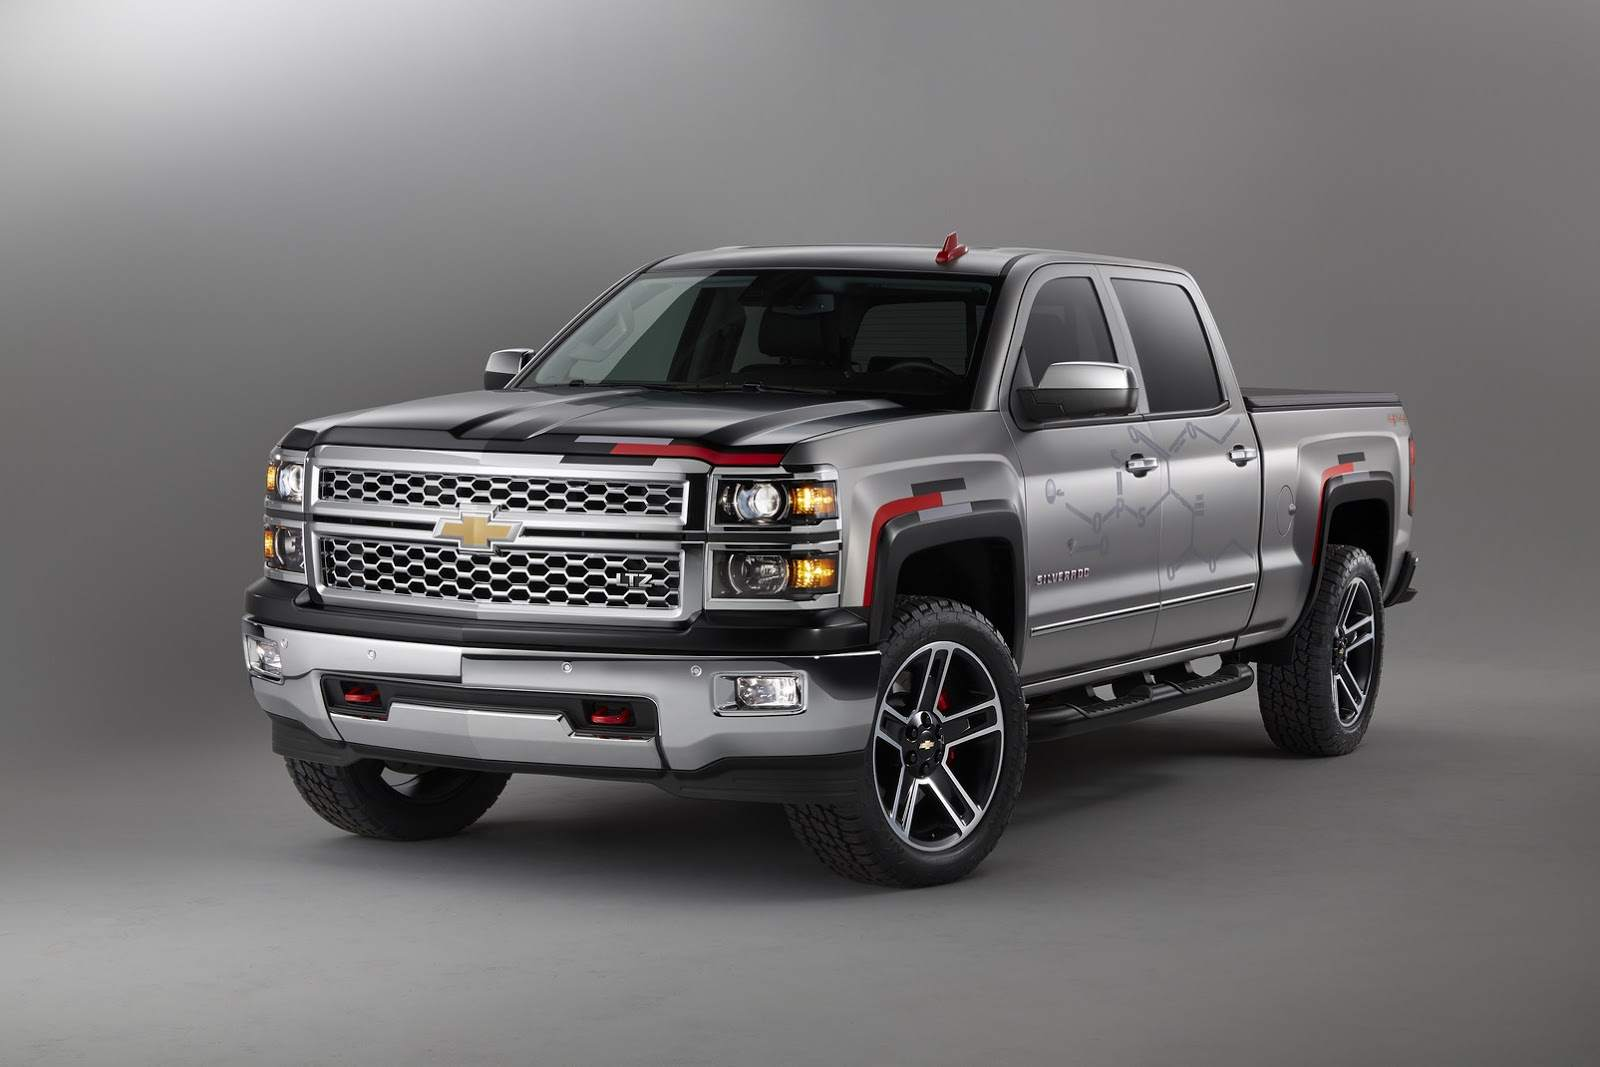 Chevrolet-Silverado-Toughnology-001 (1)